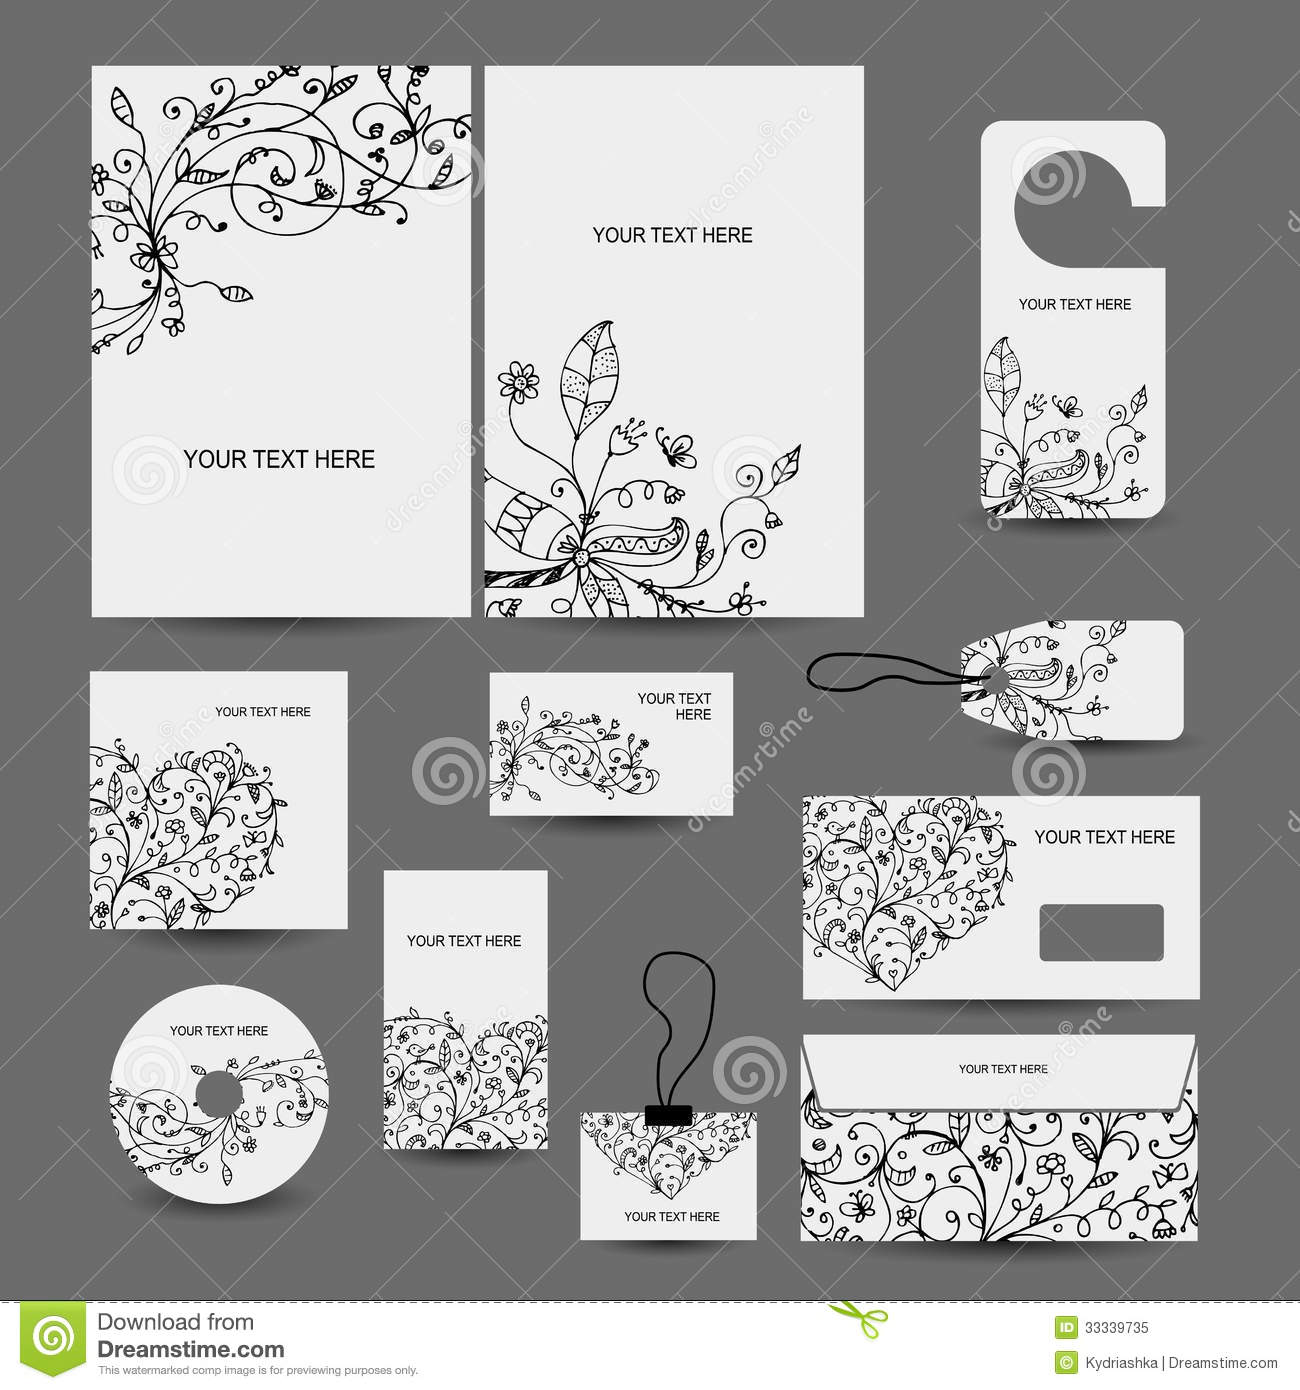 How To Make Covered Files: Corporate Business Style Design: Folder, Labels, Stock